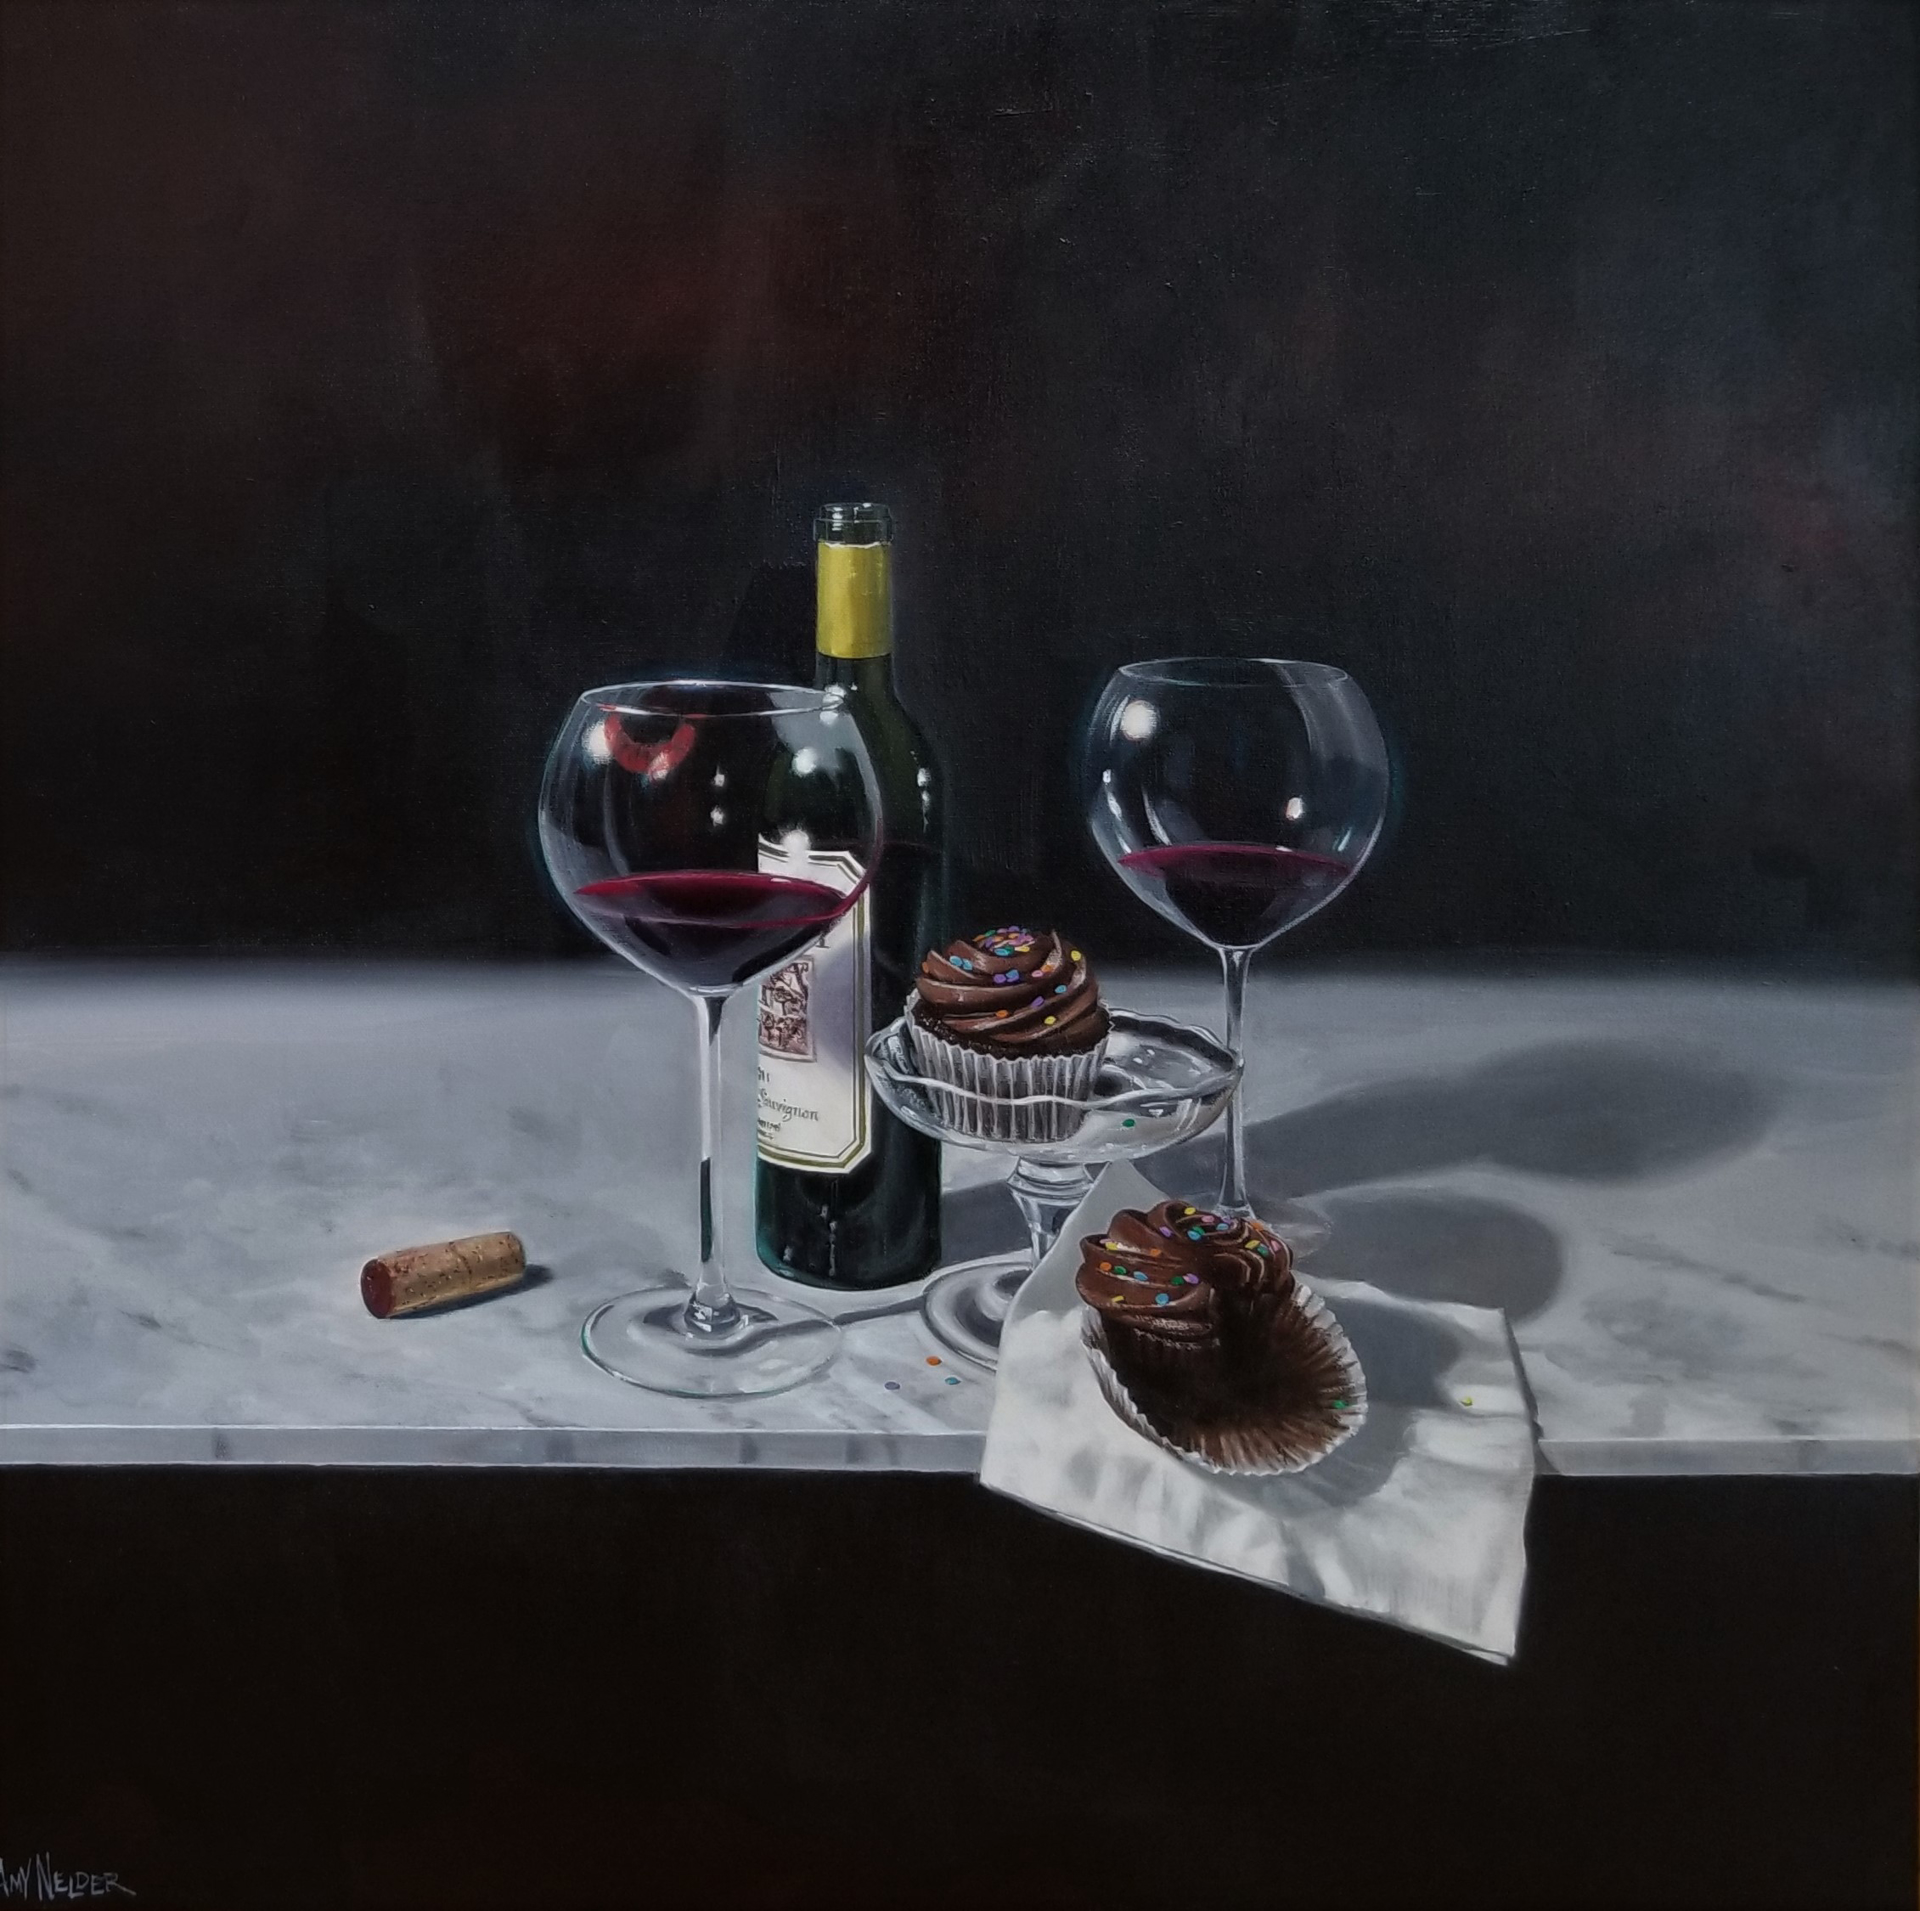 Cupcakes Interrupted by Amy Nelder